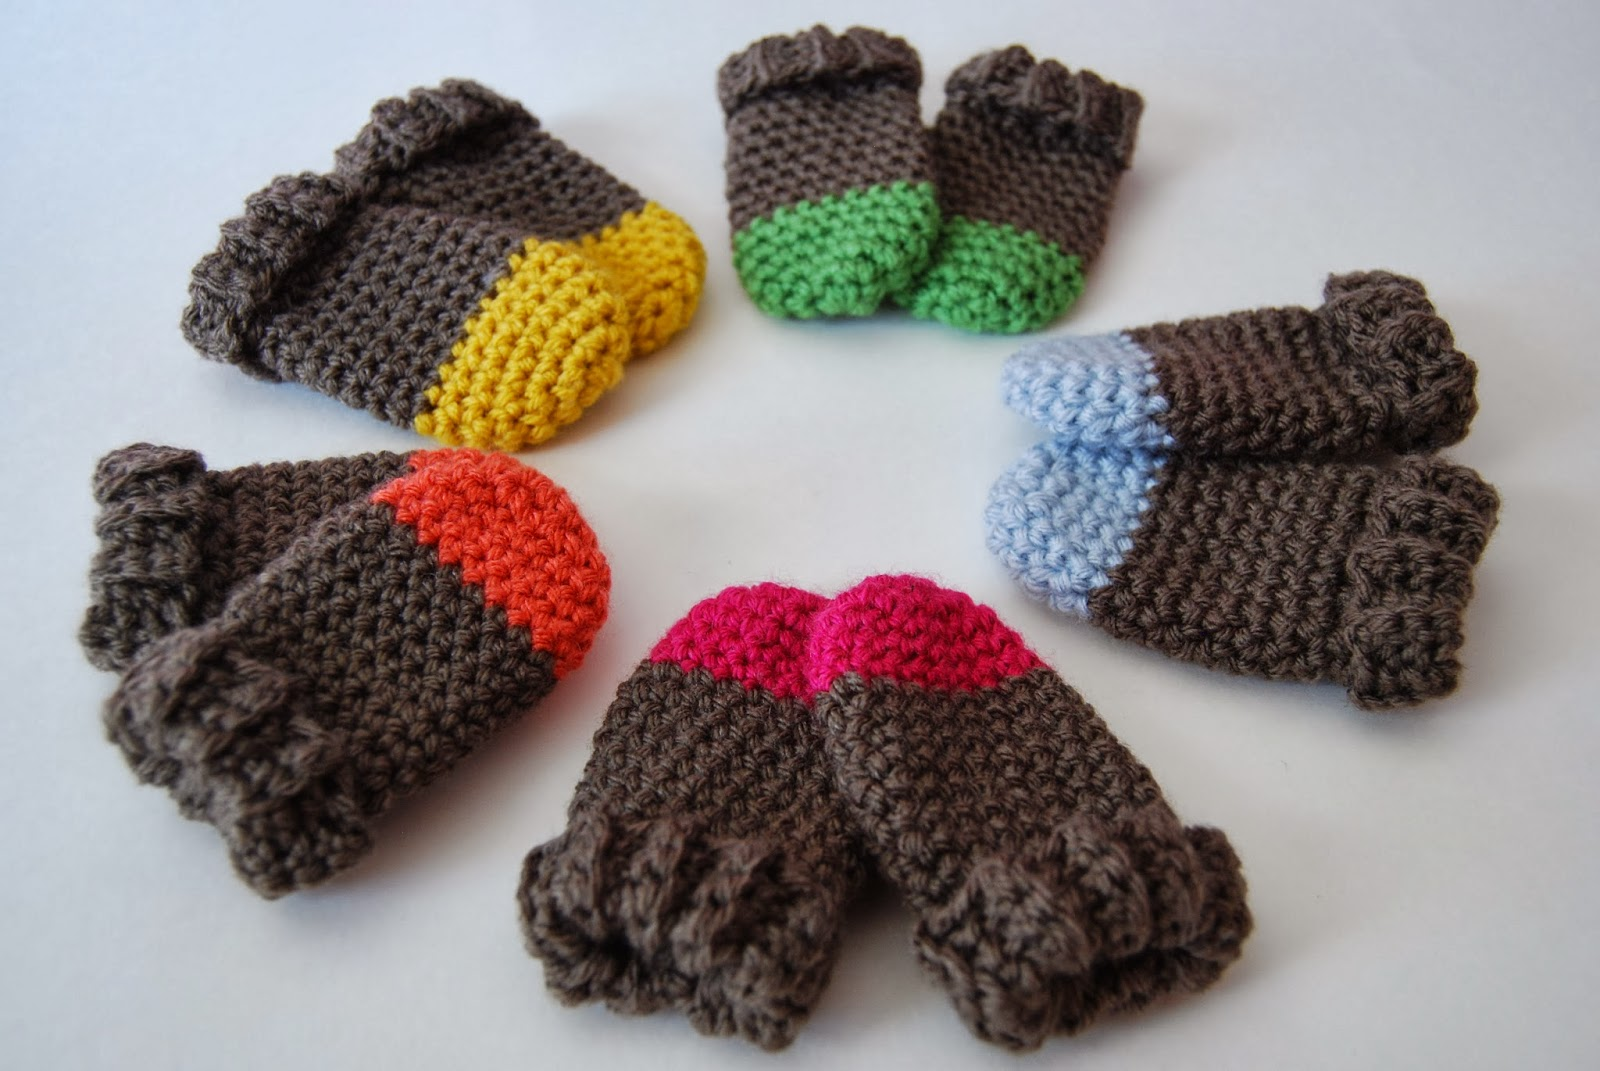 Crochet Mitten Pattern : ... pattern. A link back to the pattern in your listing would be greatly